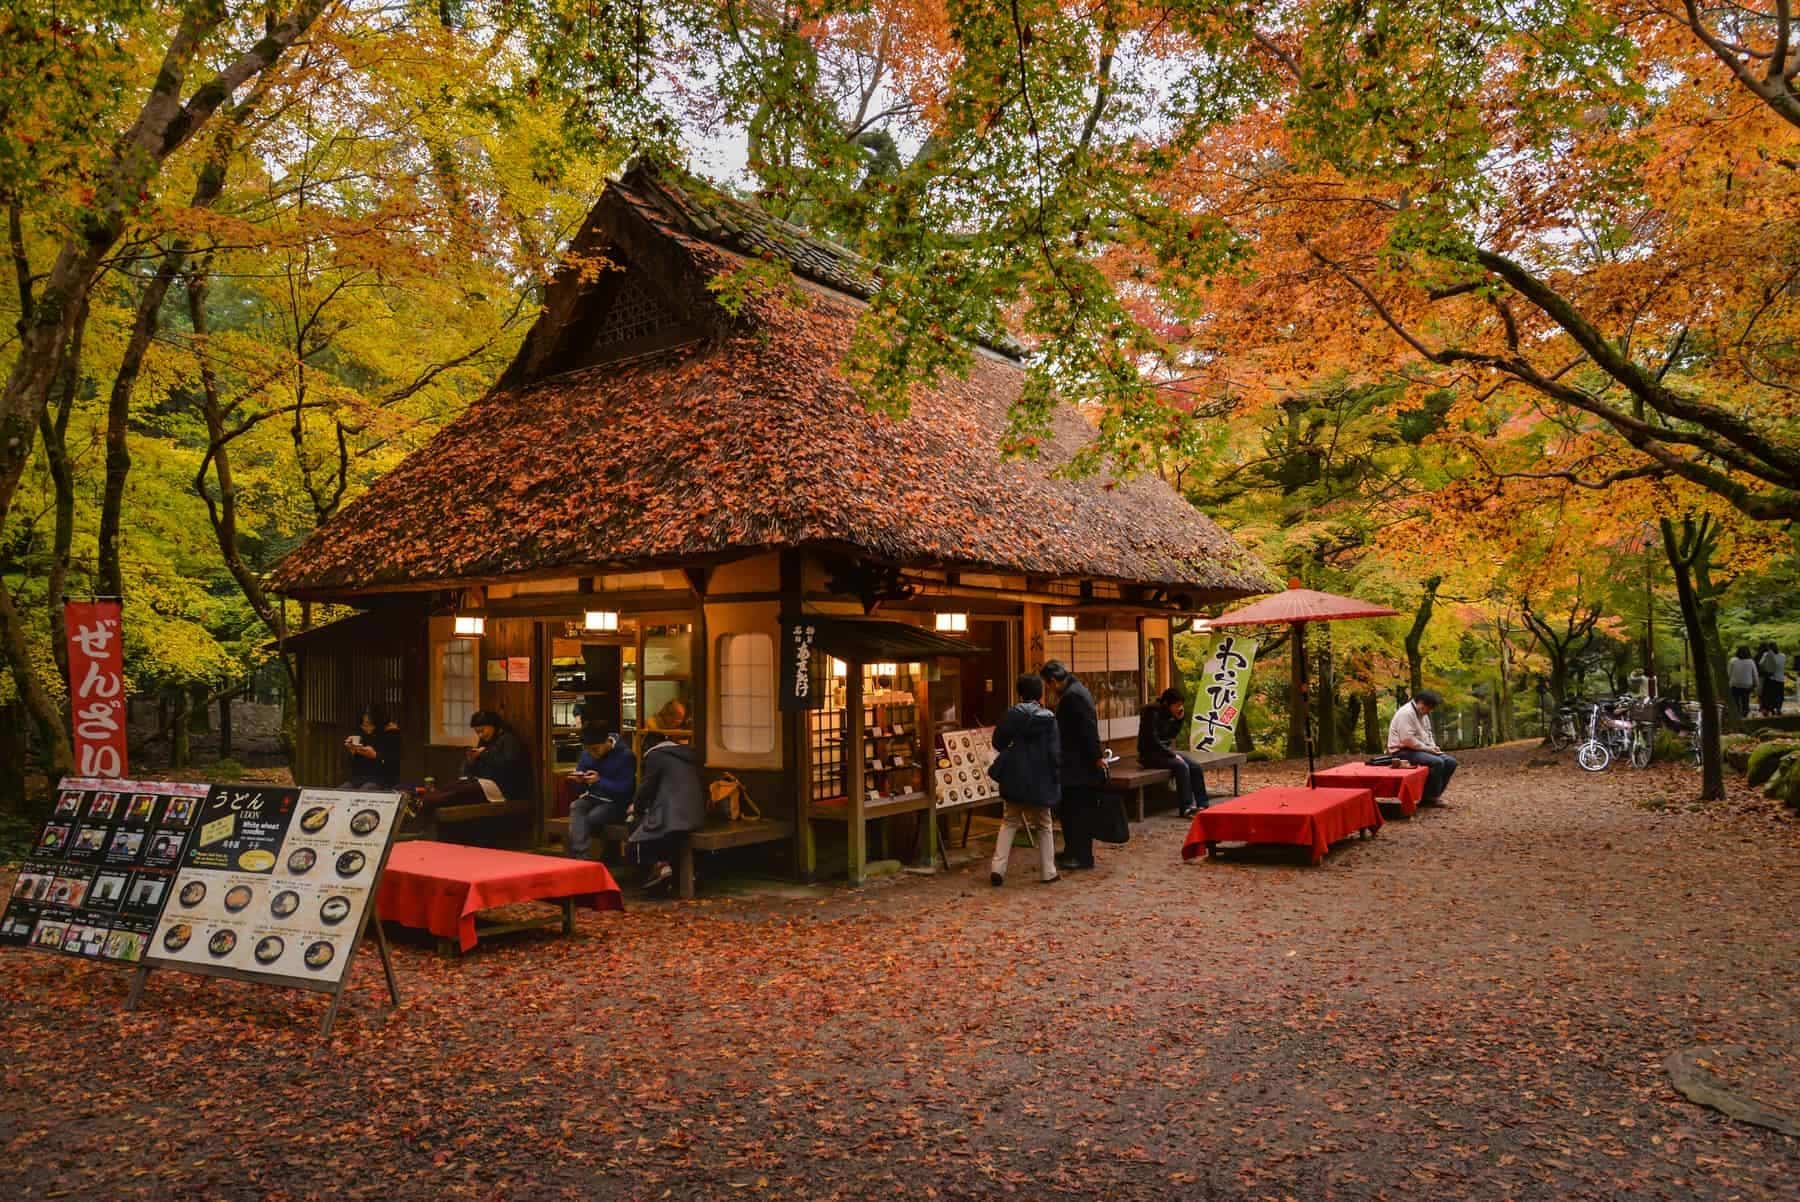 Nara, Japan. Tourists are taking a rest, having some food and tea at traditional style teahouse after a walk in Nara Park, Nara, Japan